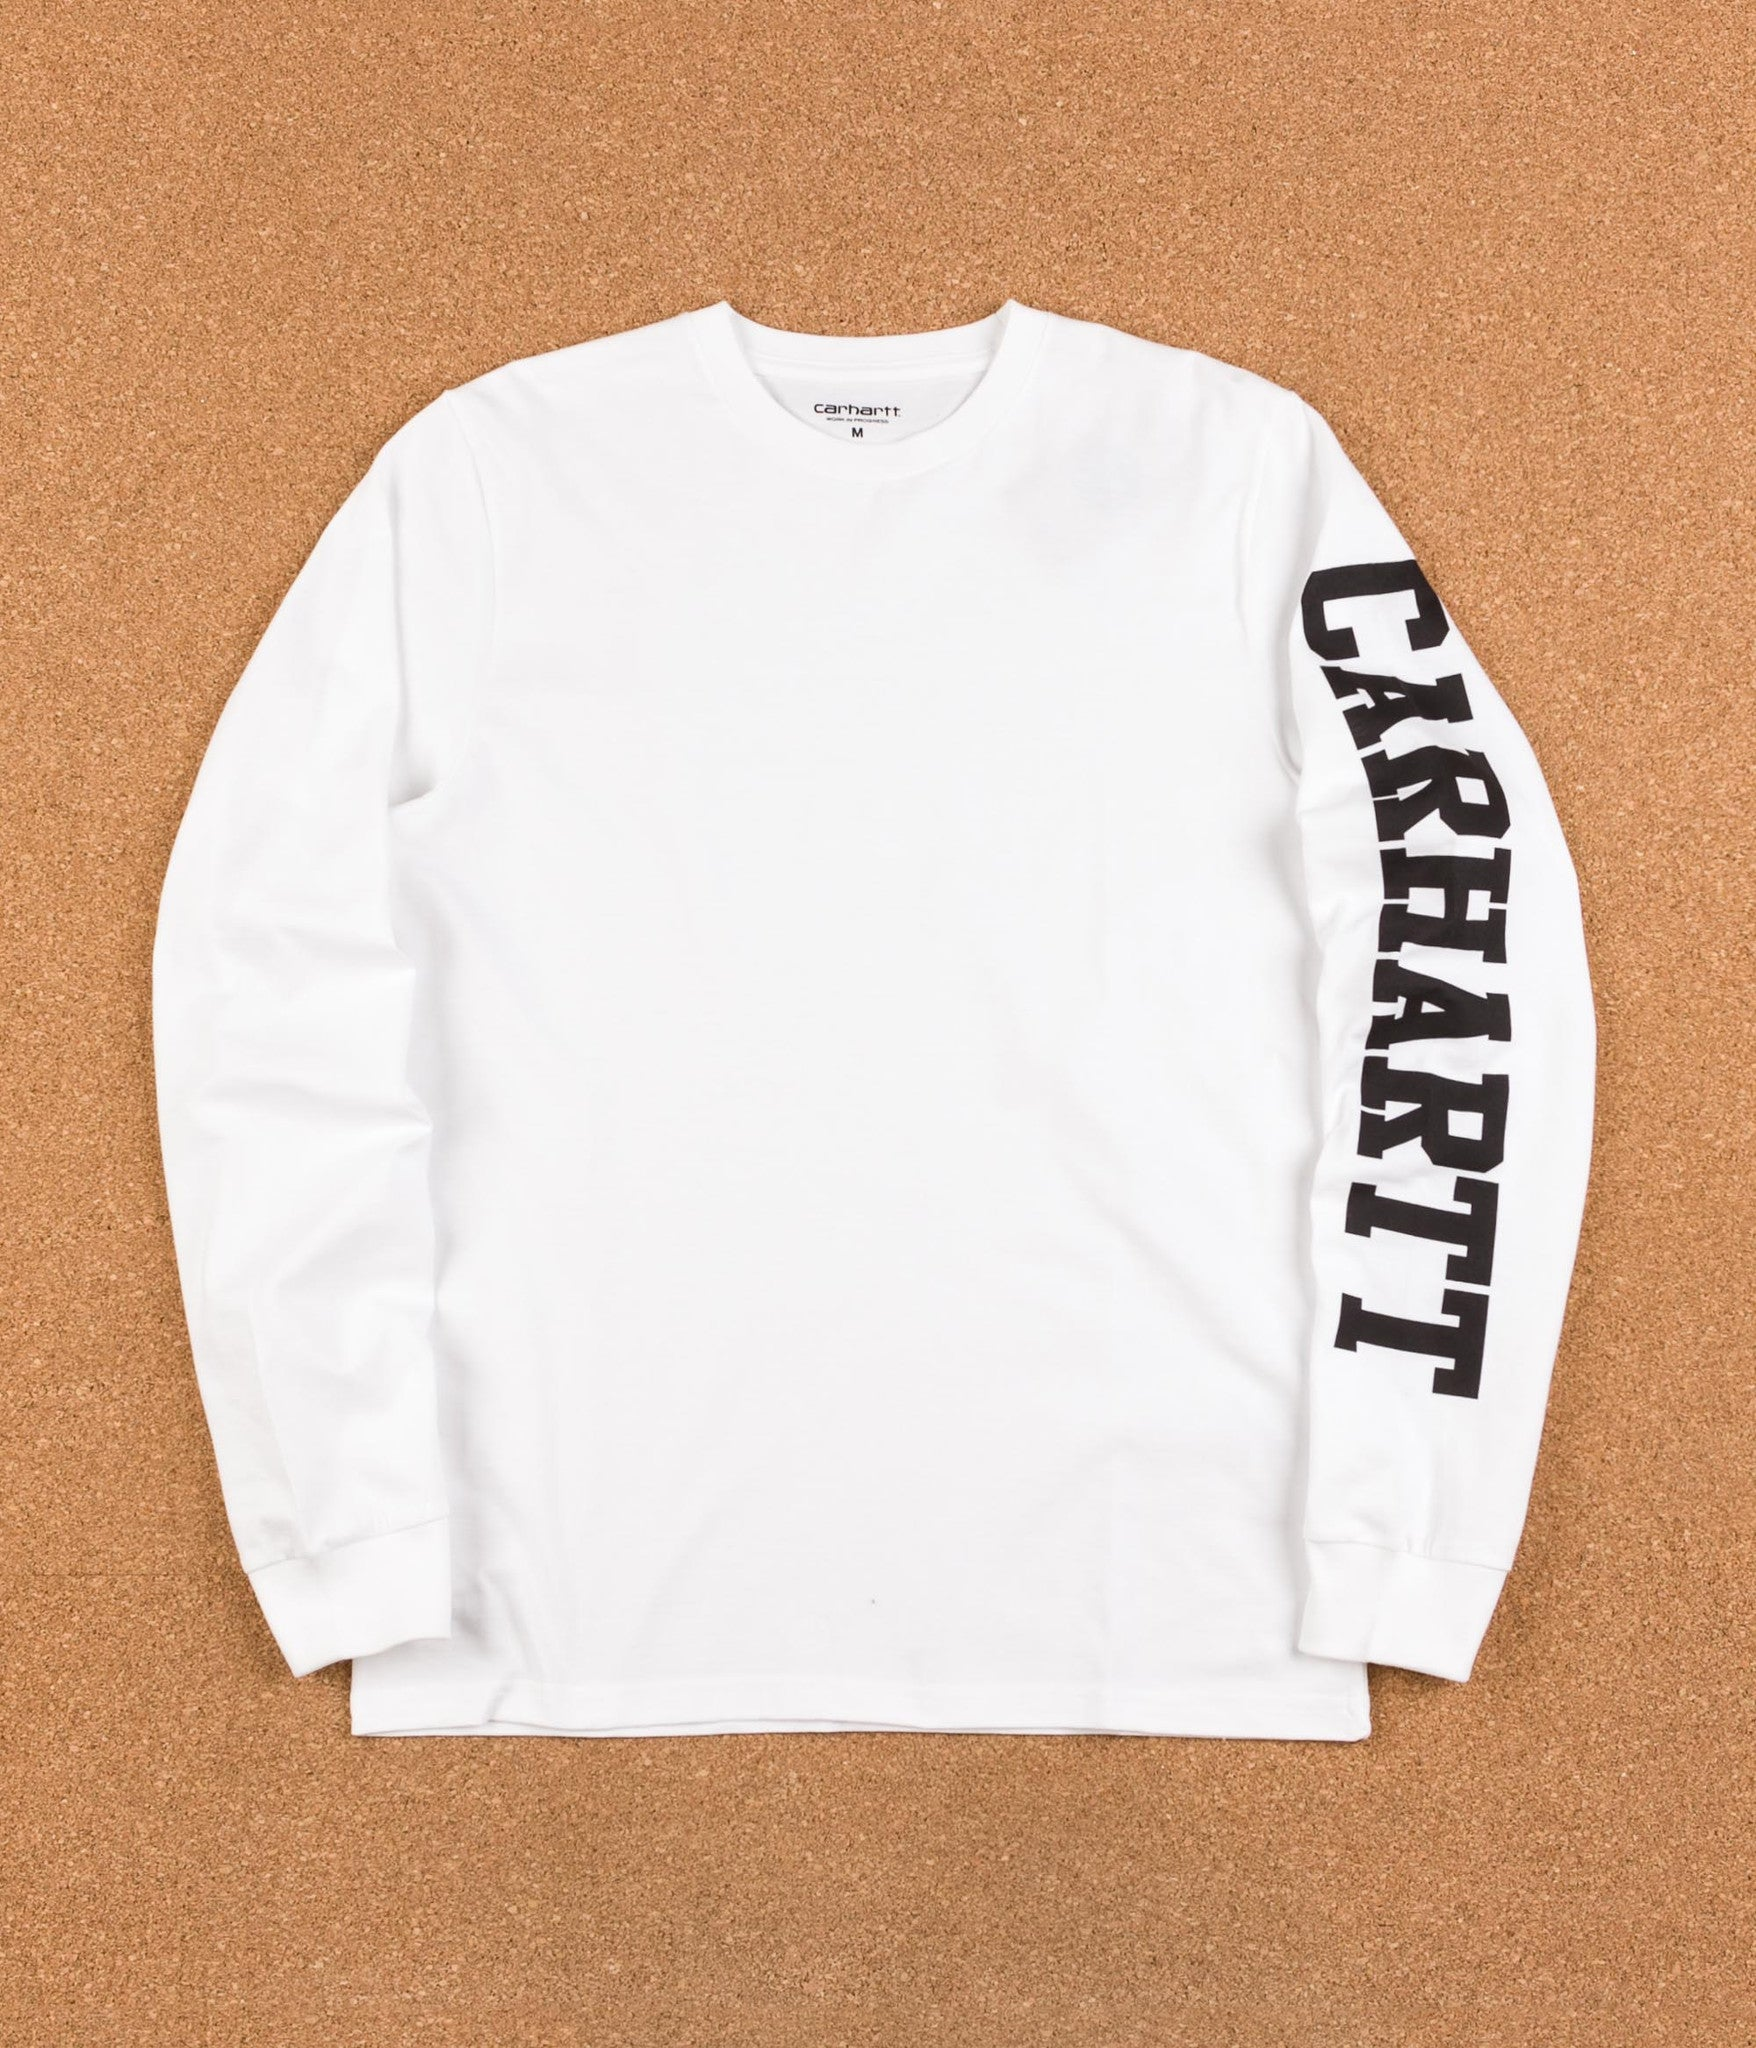 Carhartt college left long sleeve t shirt white black for Carhartt long sleeve t shirts white